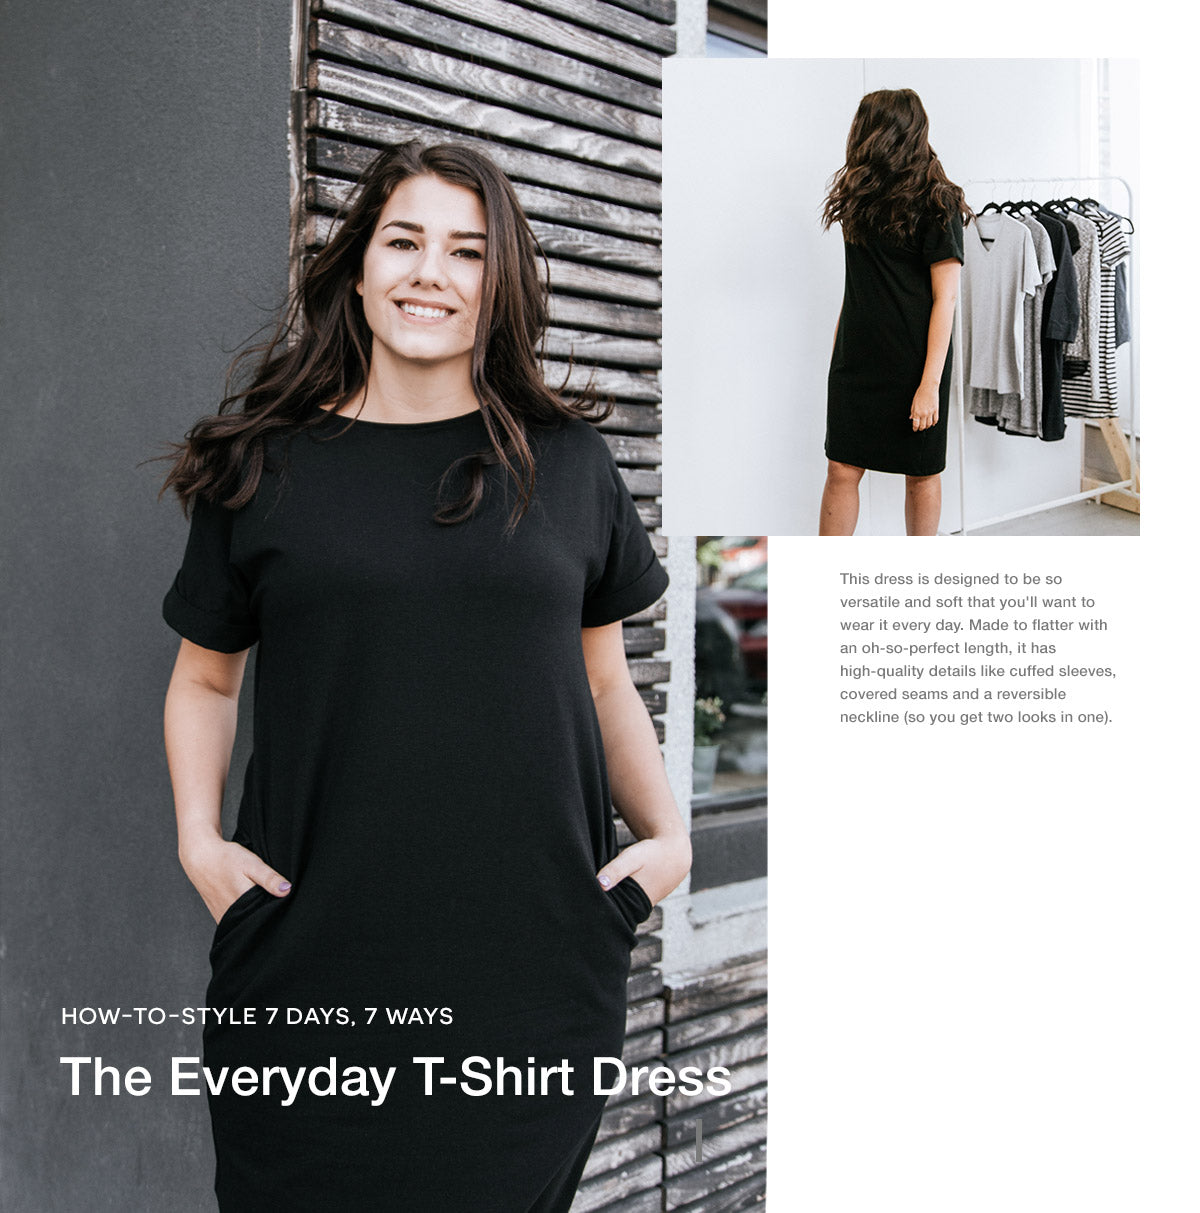 d9e2e03f962 Style the Everyday T-Shirt Dress for every day of the week by wearing it  alone, changing up the accessories, or by layering a cardigan, blazer, ...